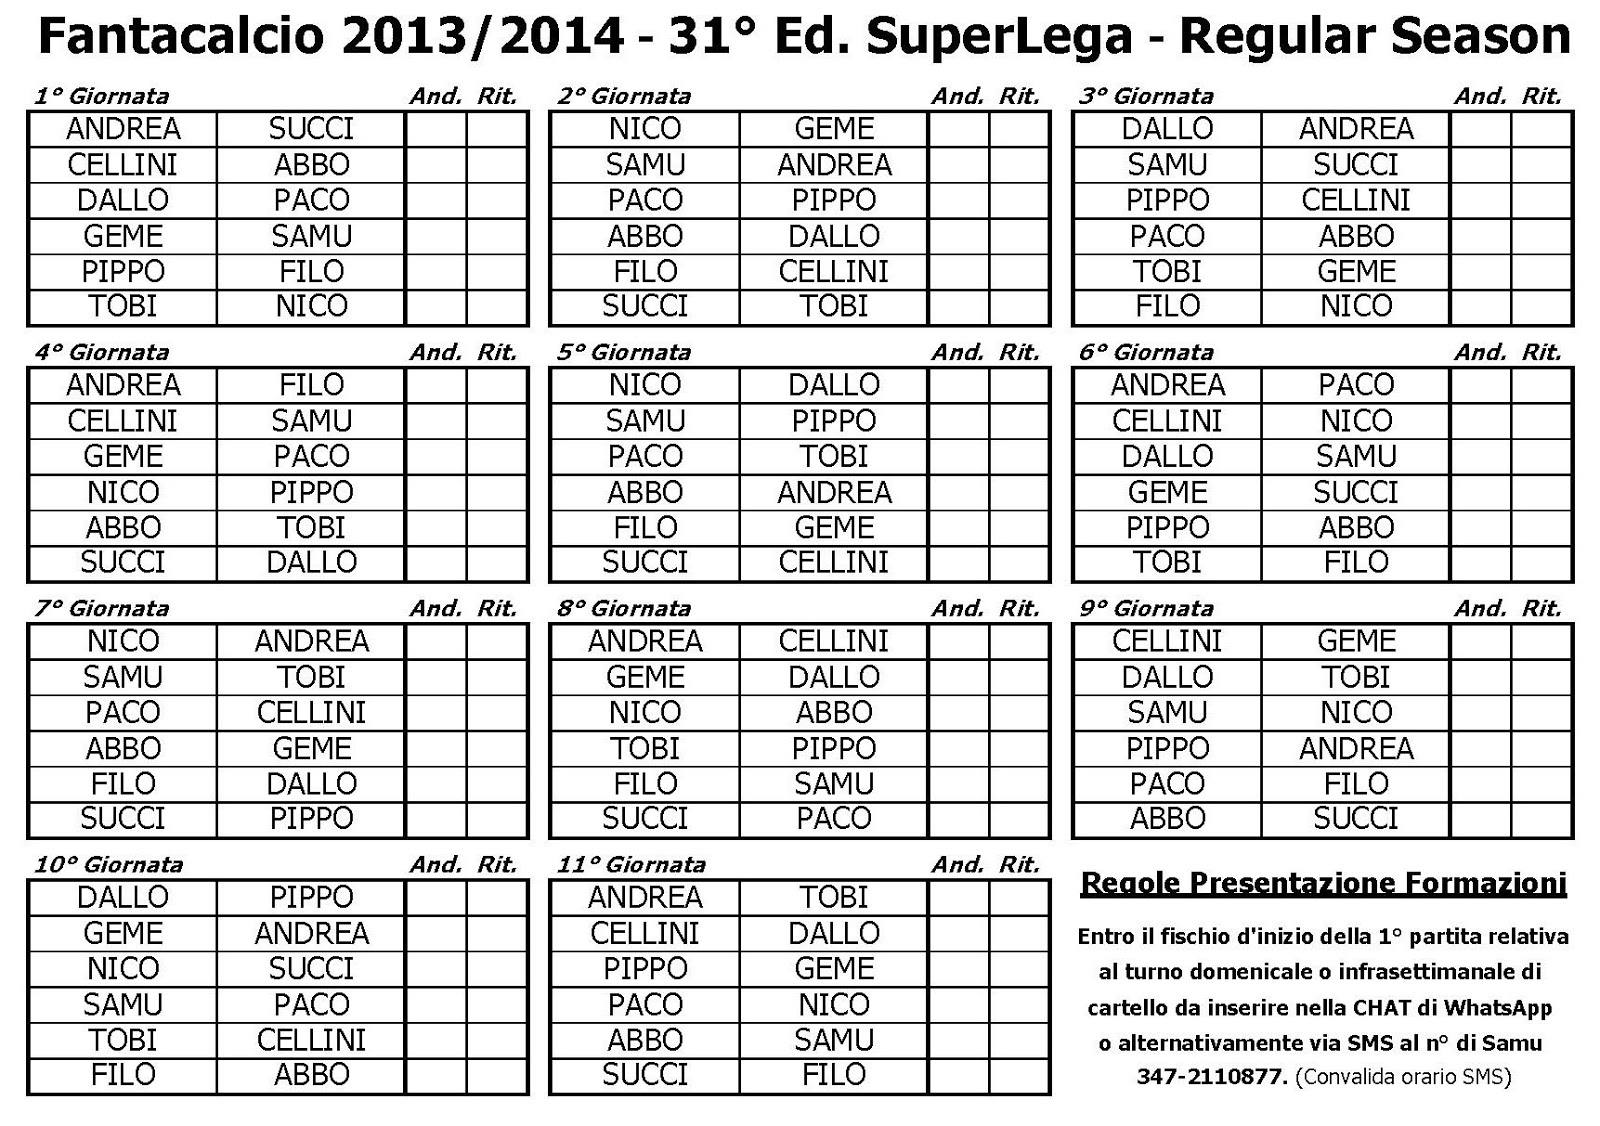 Calendario Fantacalcio.35 Fantacalcio Superlega 2017 2018 Superlega 13 14